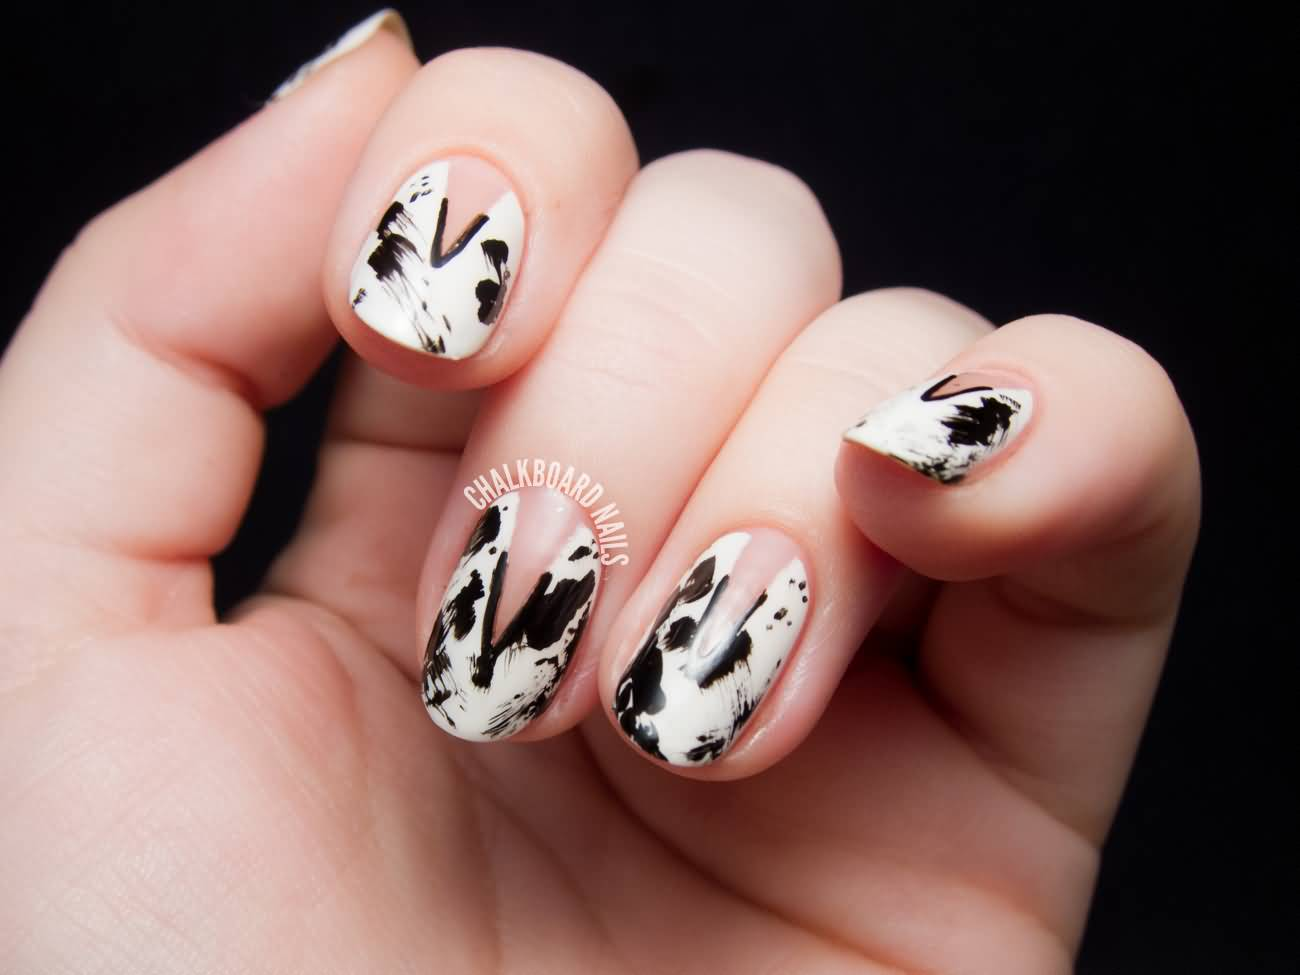 White color nail art - Black And White Splatter Color Nails With Negative Space Nail Art Design